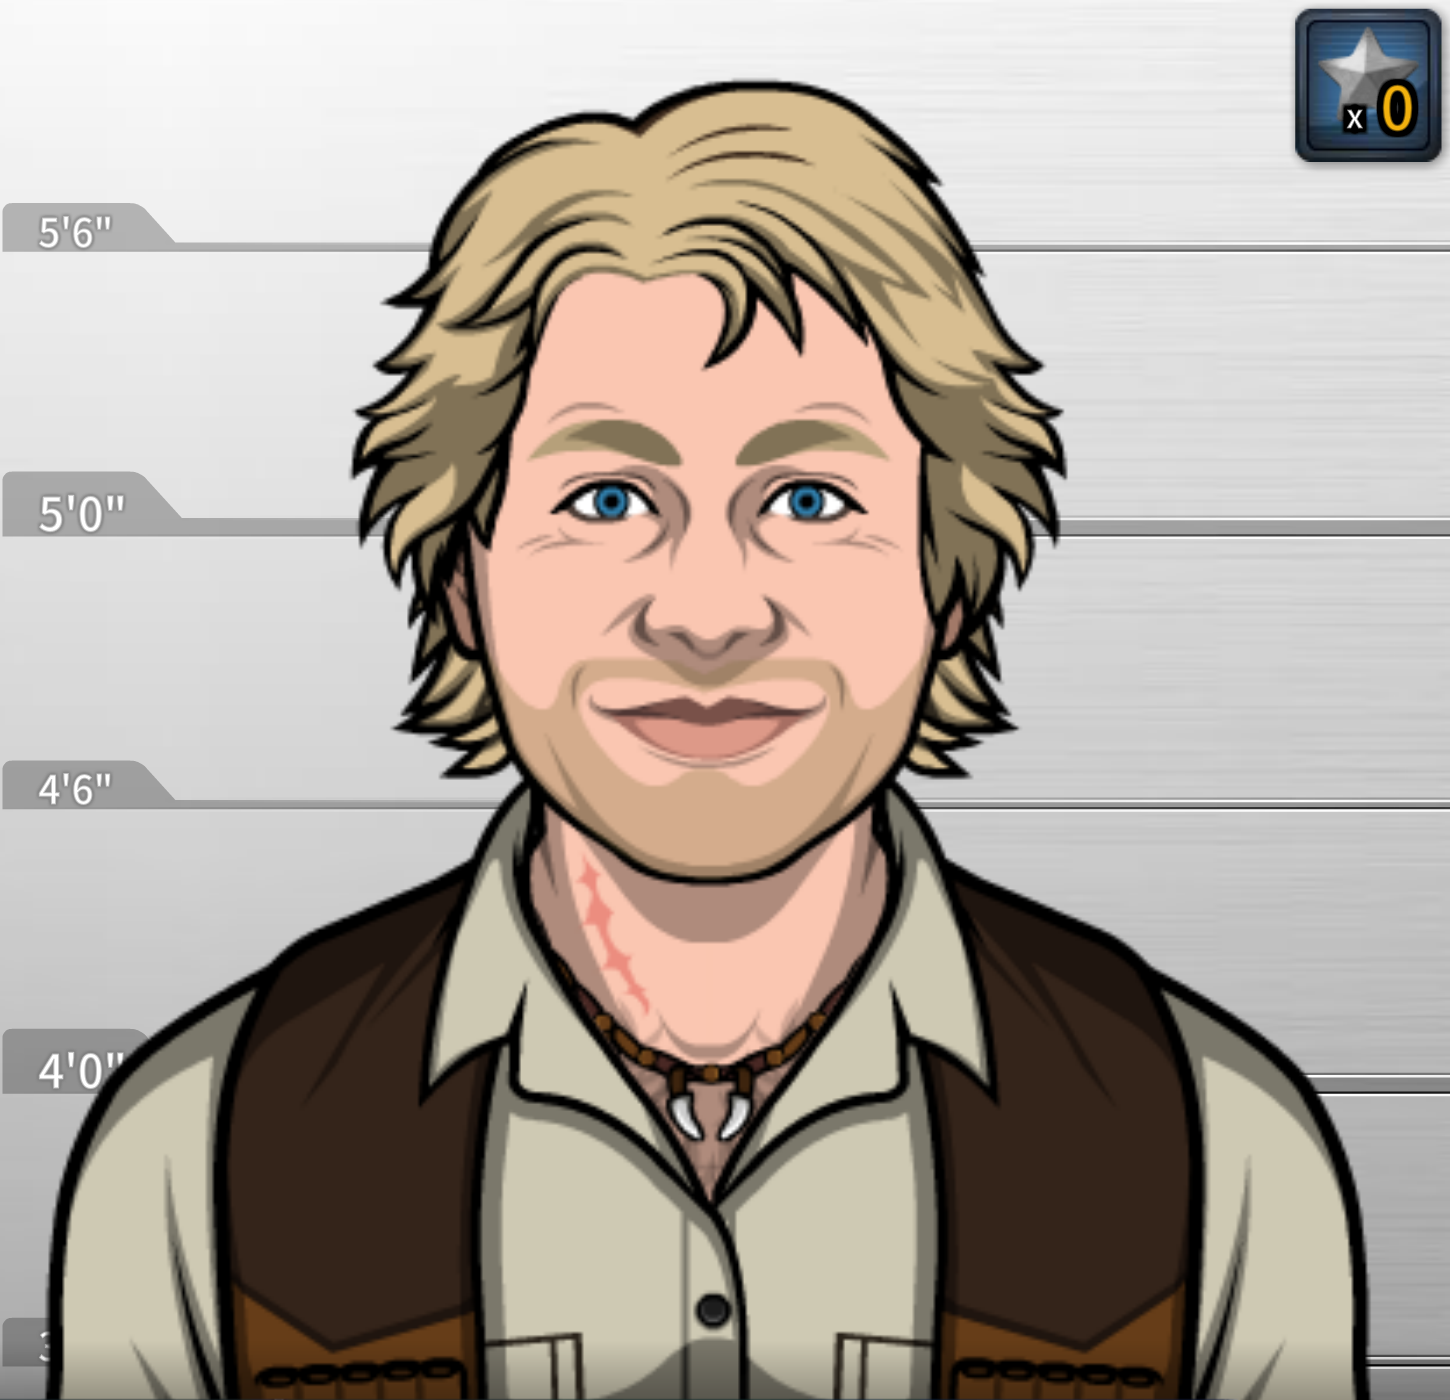 Case Paul paul irwin | criminal case wiki | fandom poweredwikia